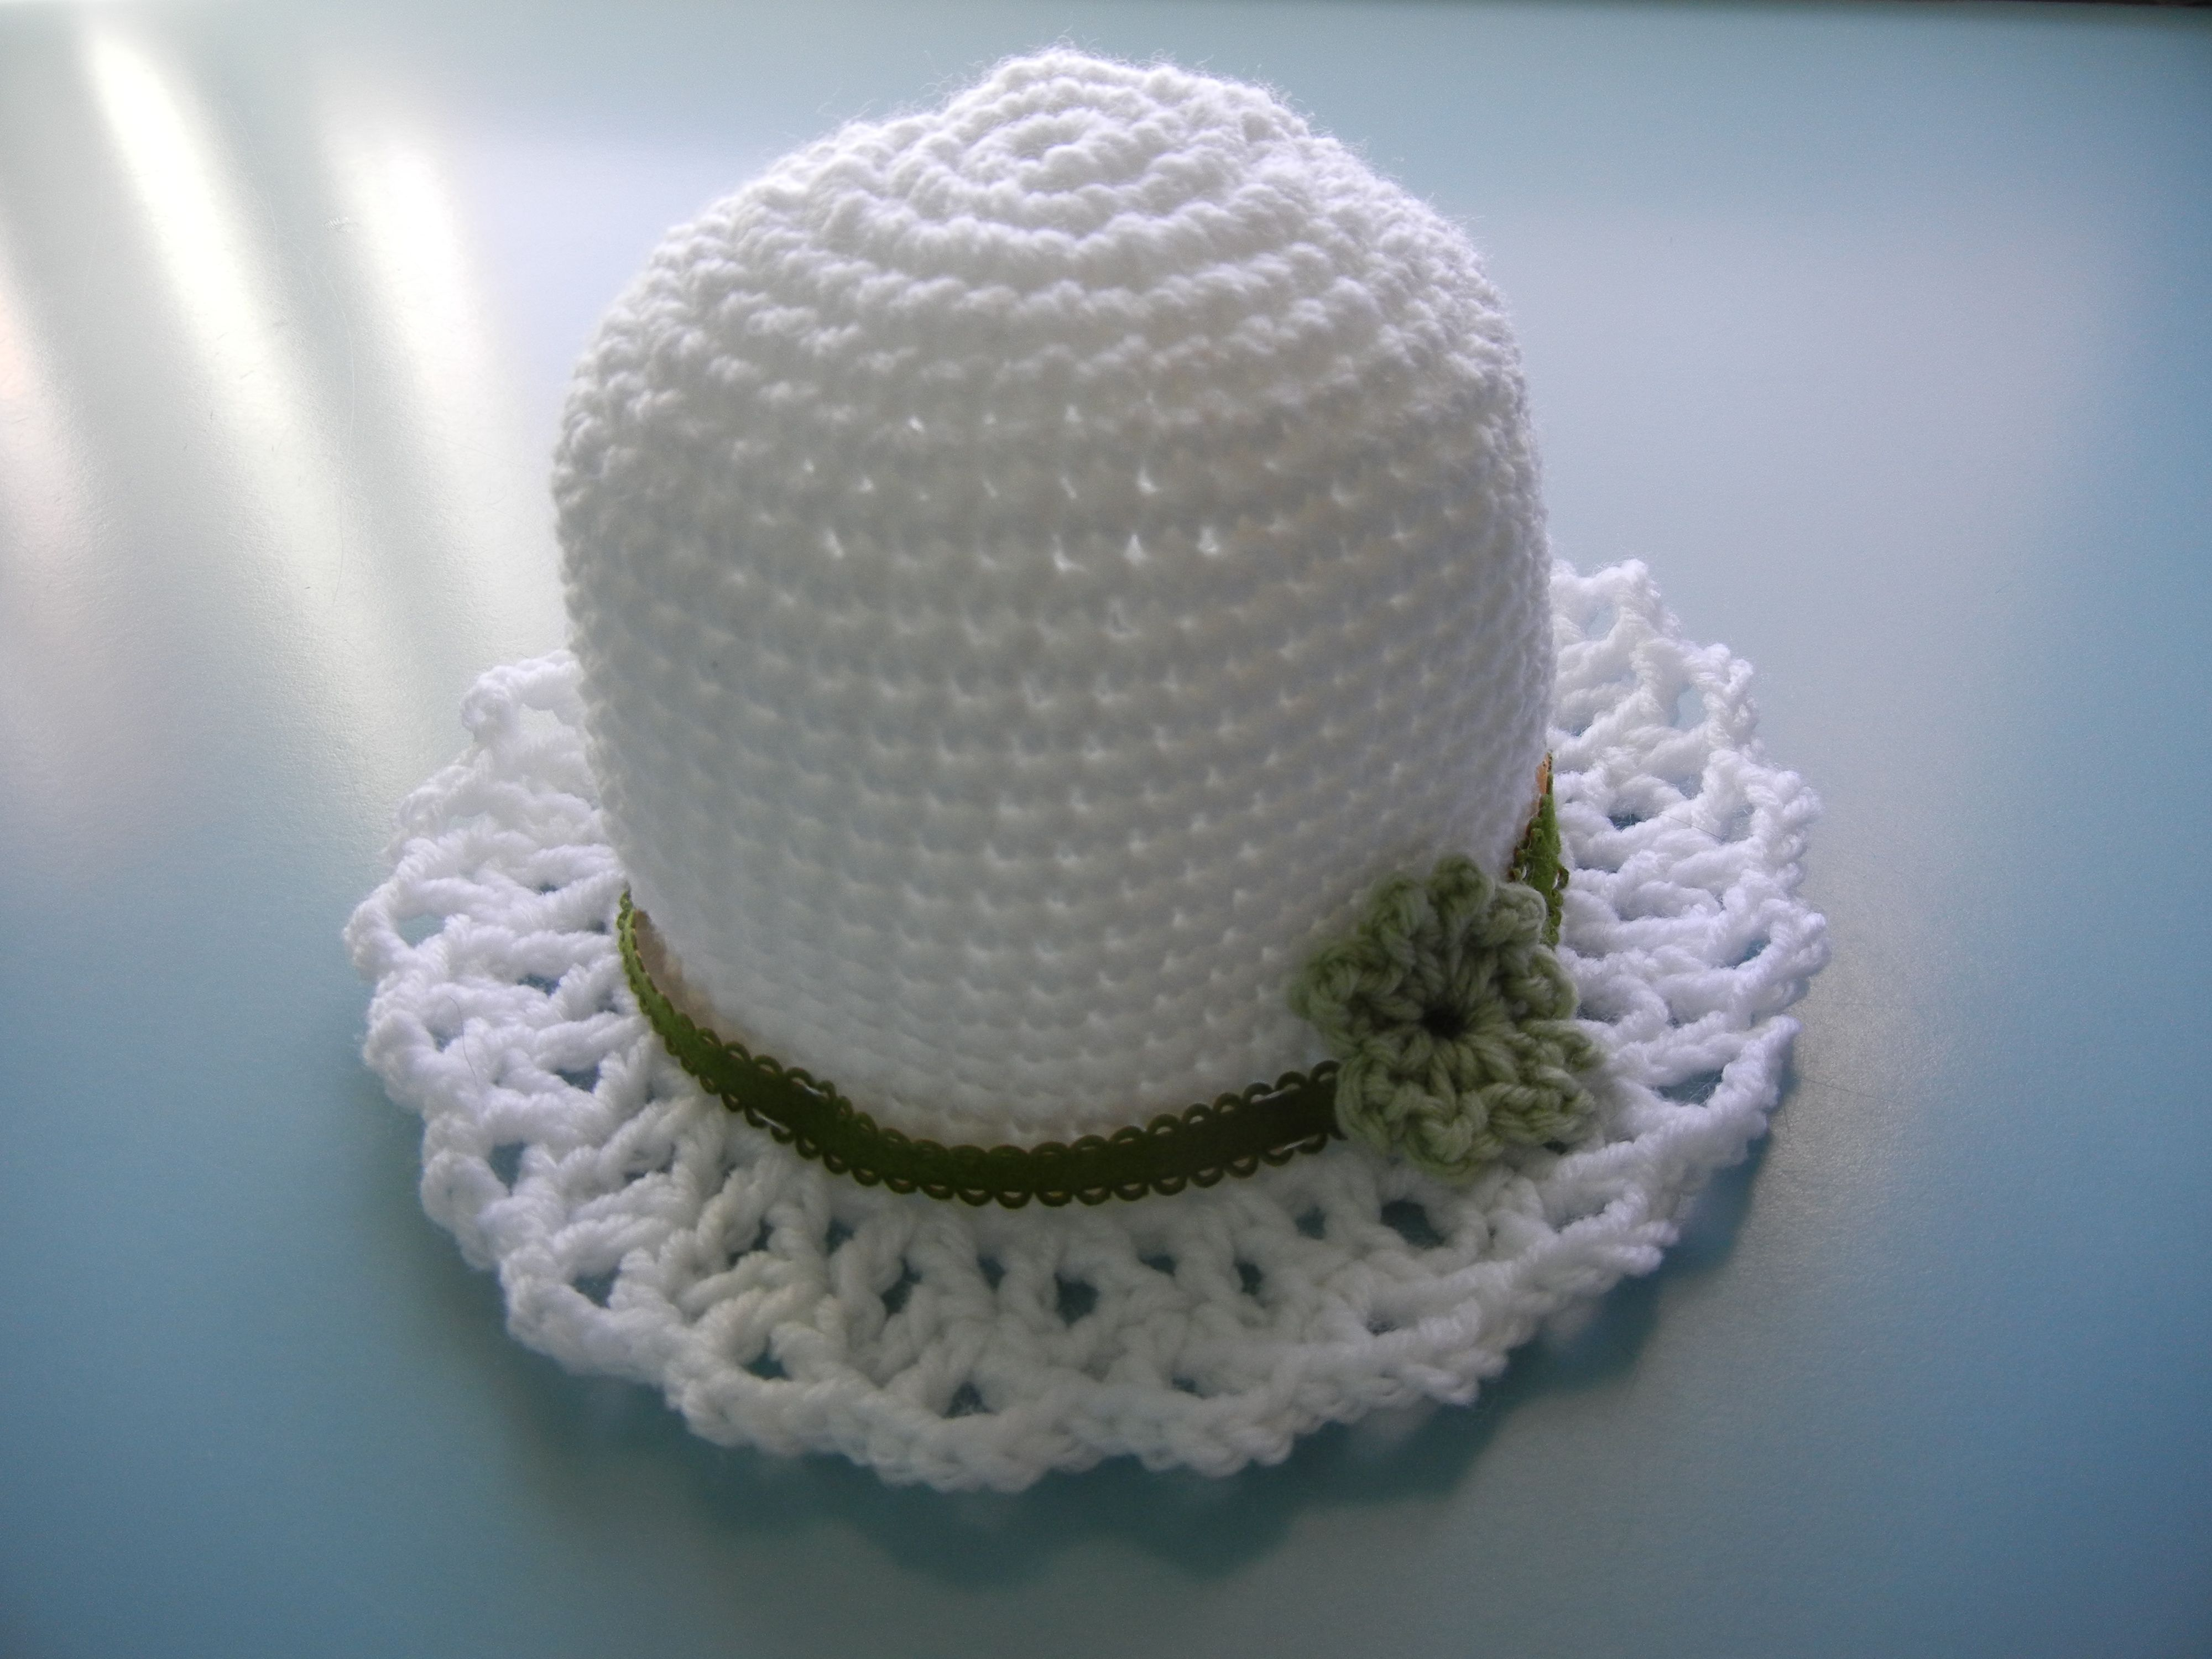 White hat with an olive green band and flower for a child.